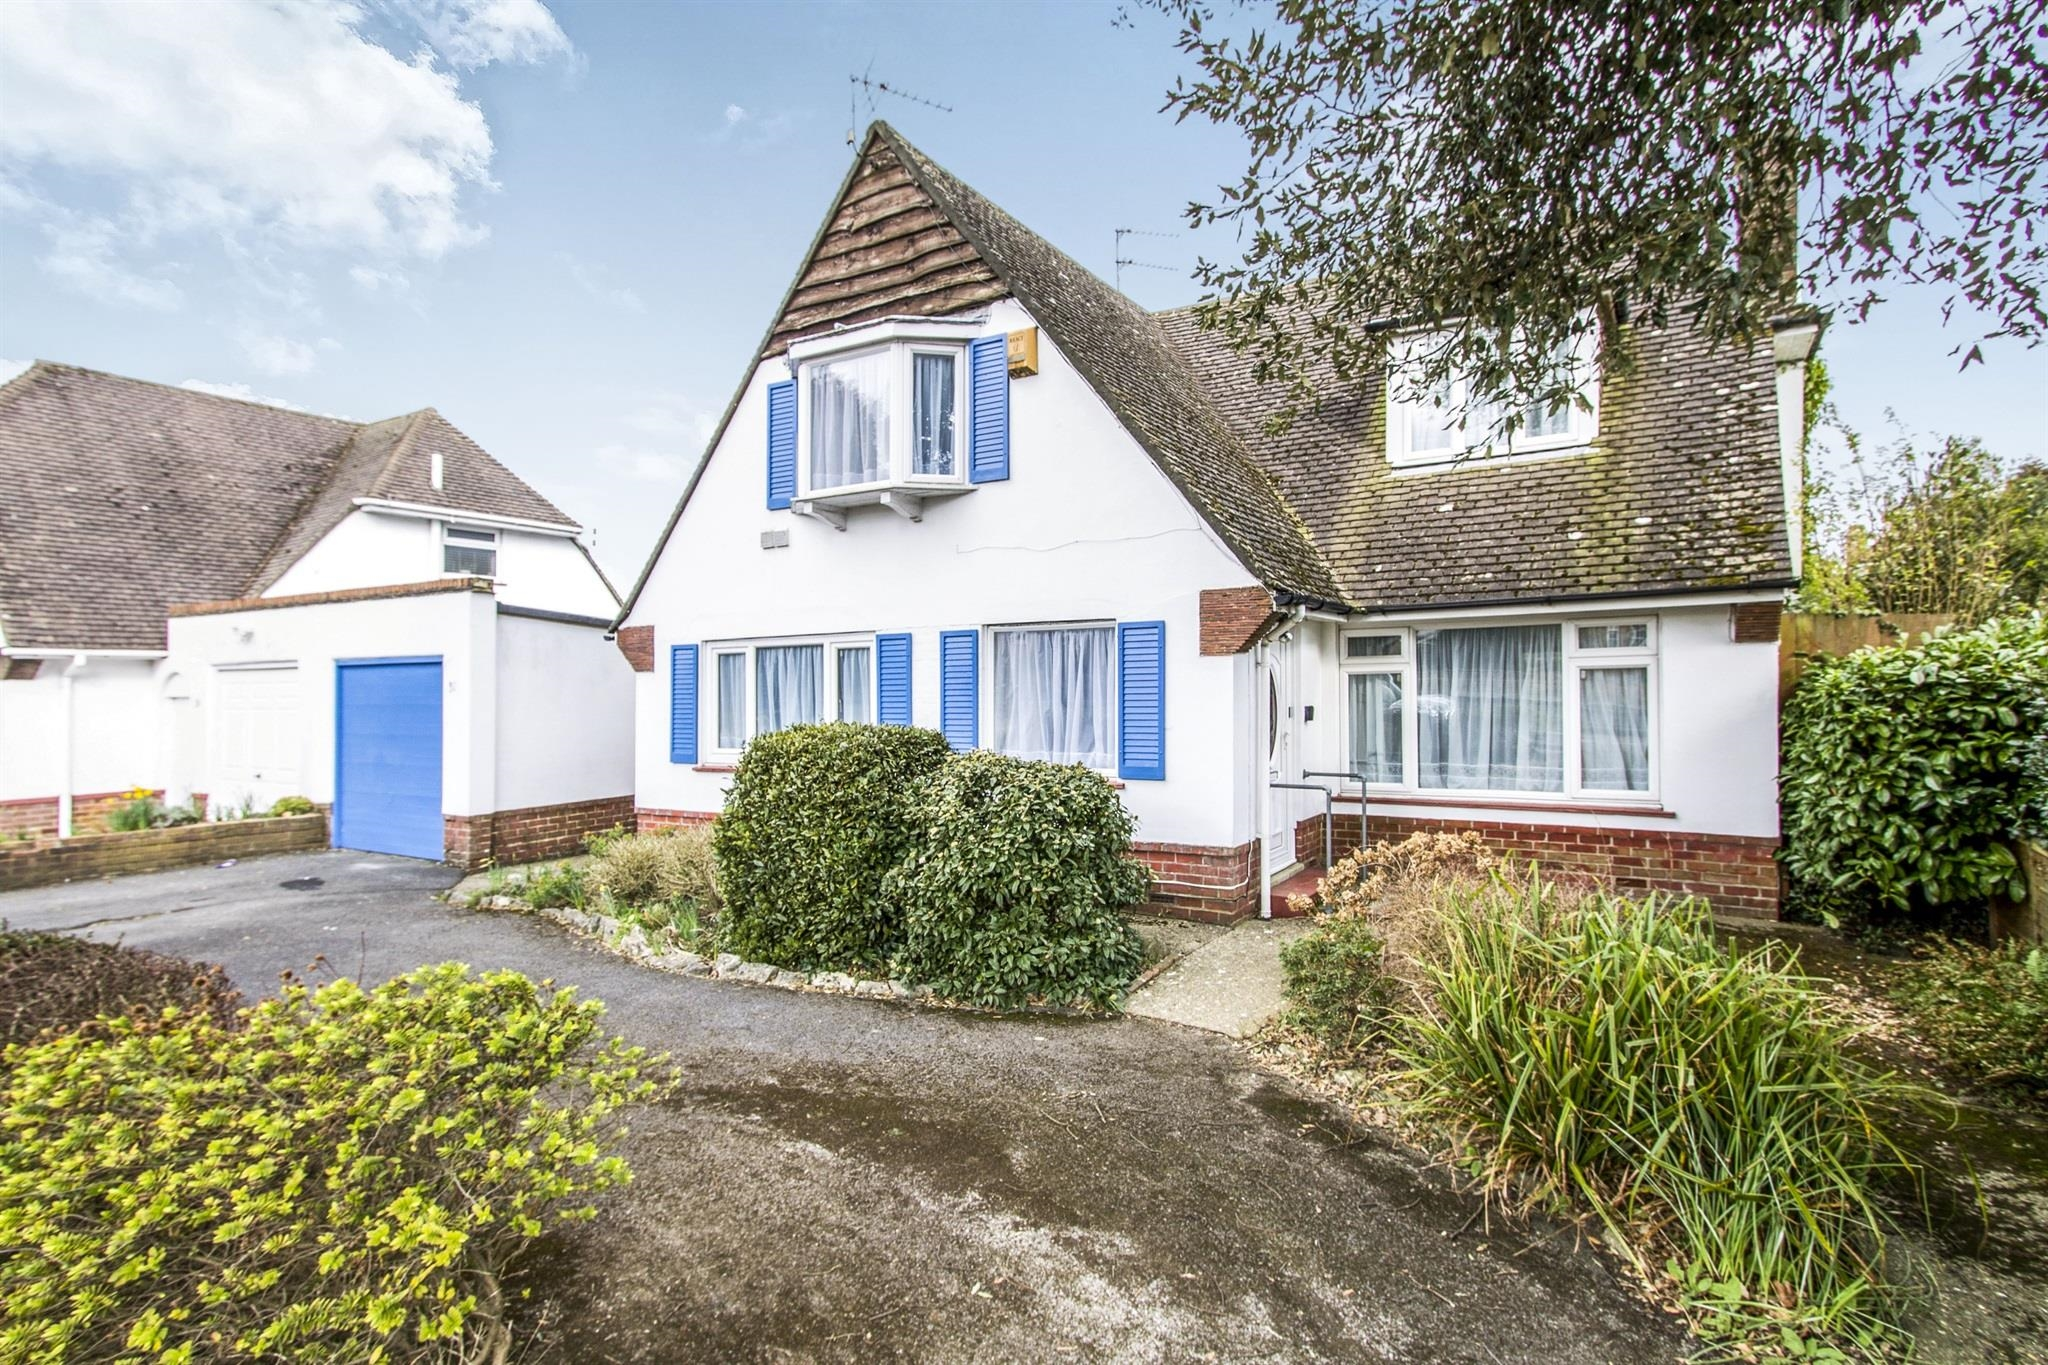 3 Bedroom Bungalow For Sale Wellington Road Bournemouth Bh8 8jh